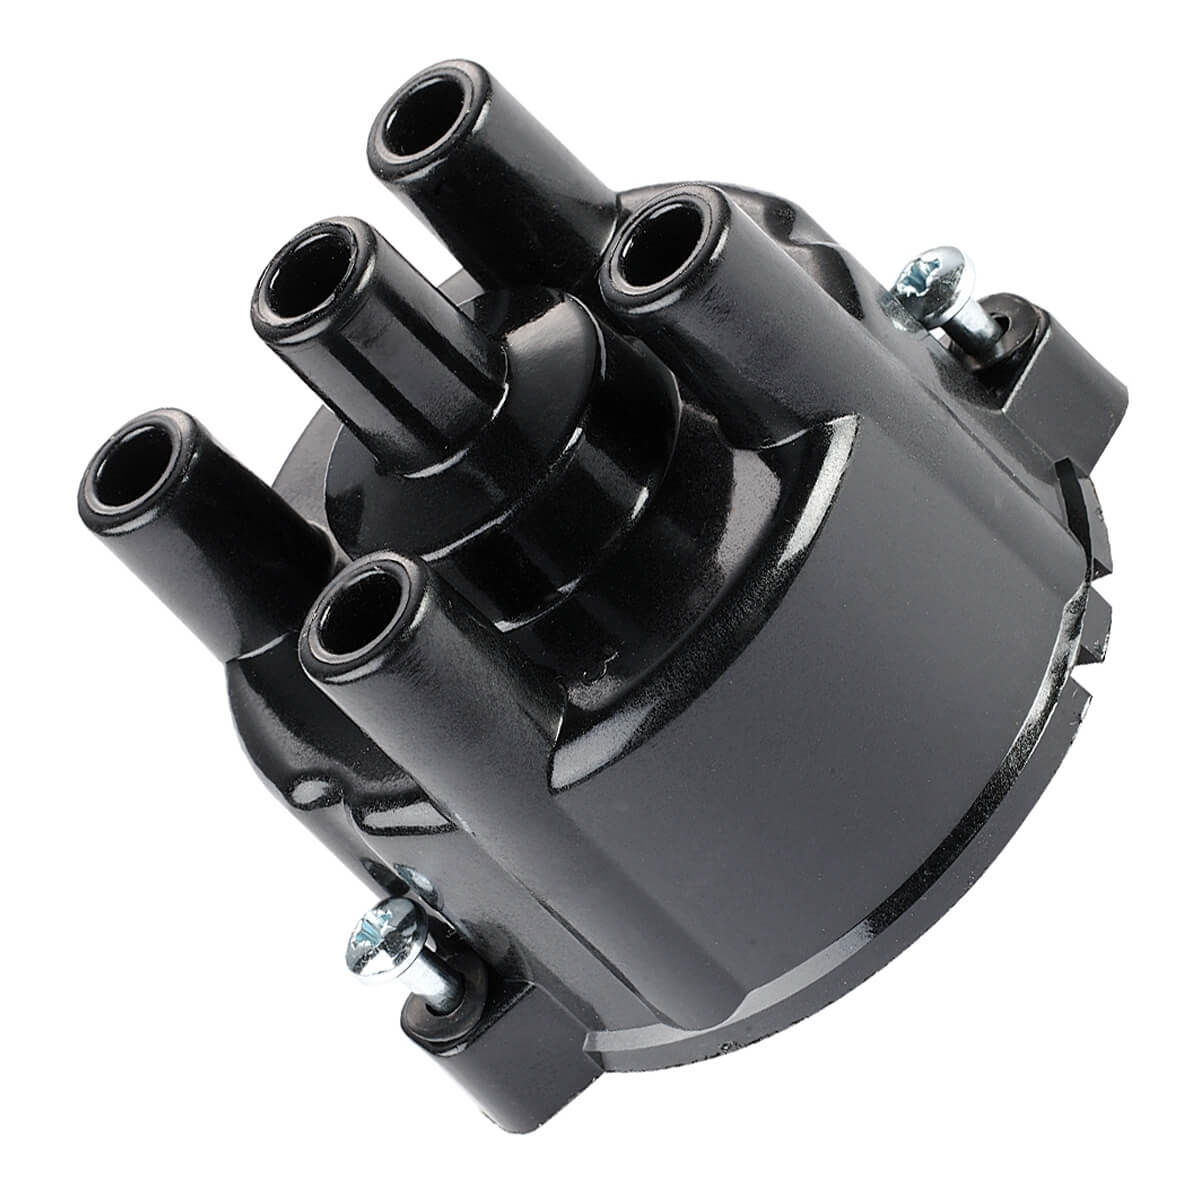 CITROEN C4 SPACETOURER Distributor Cap